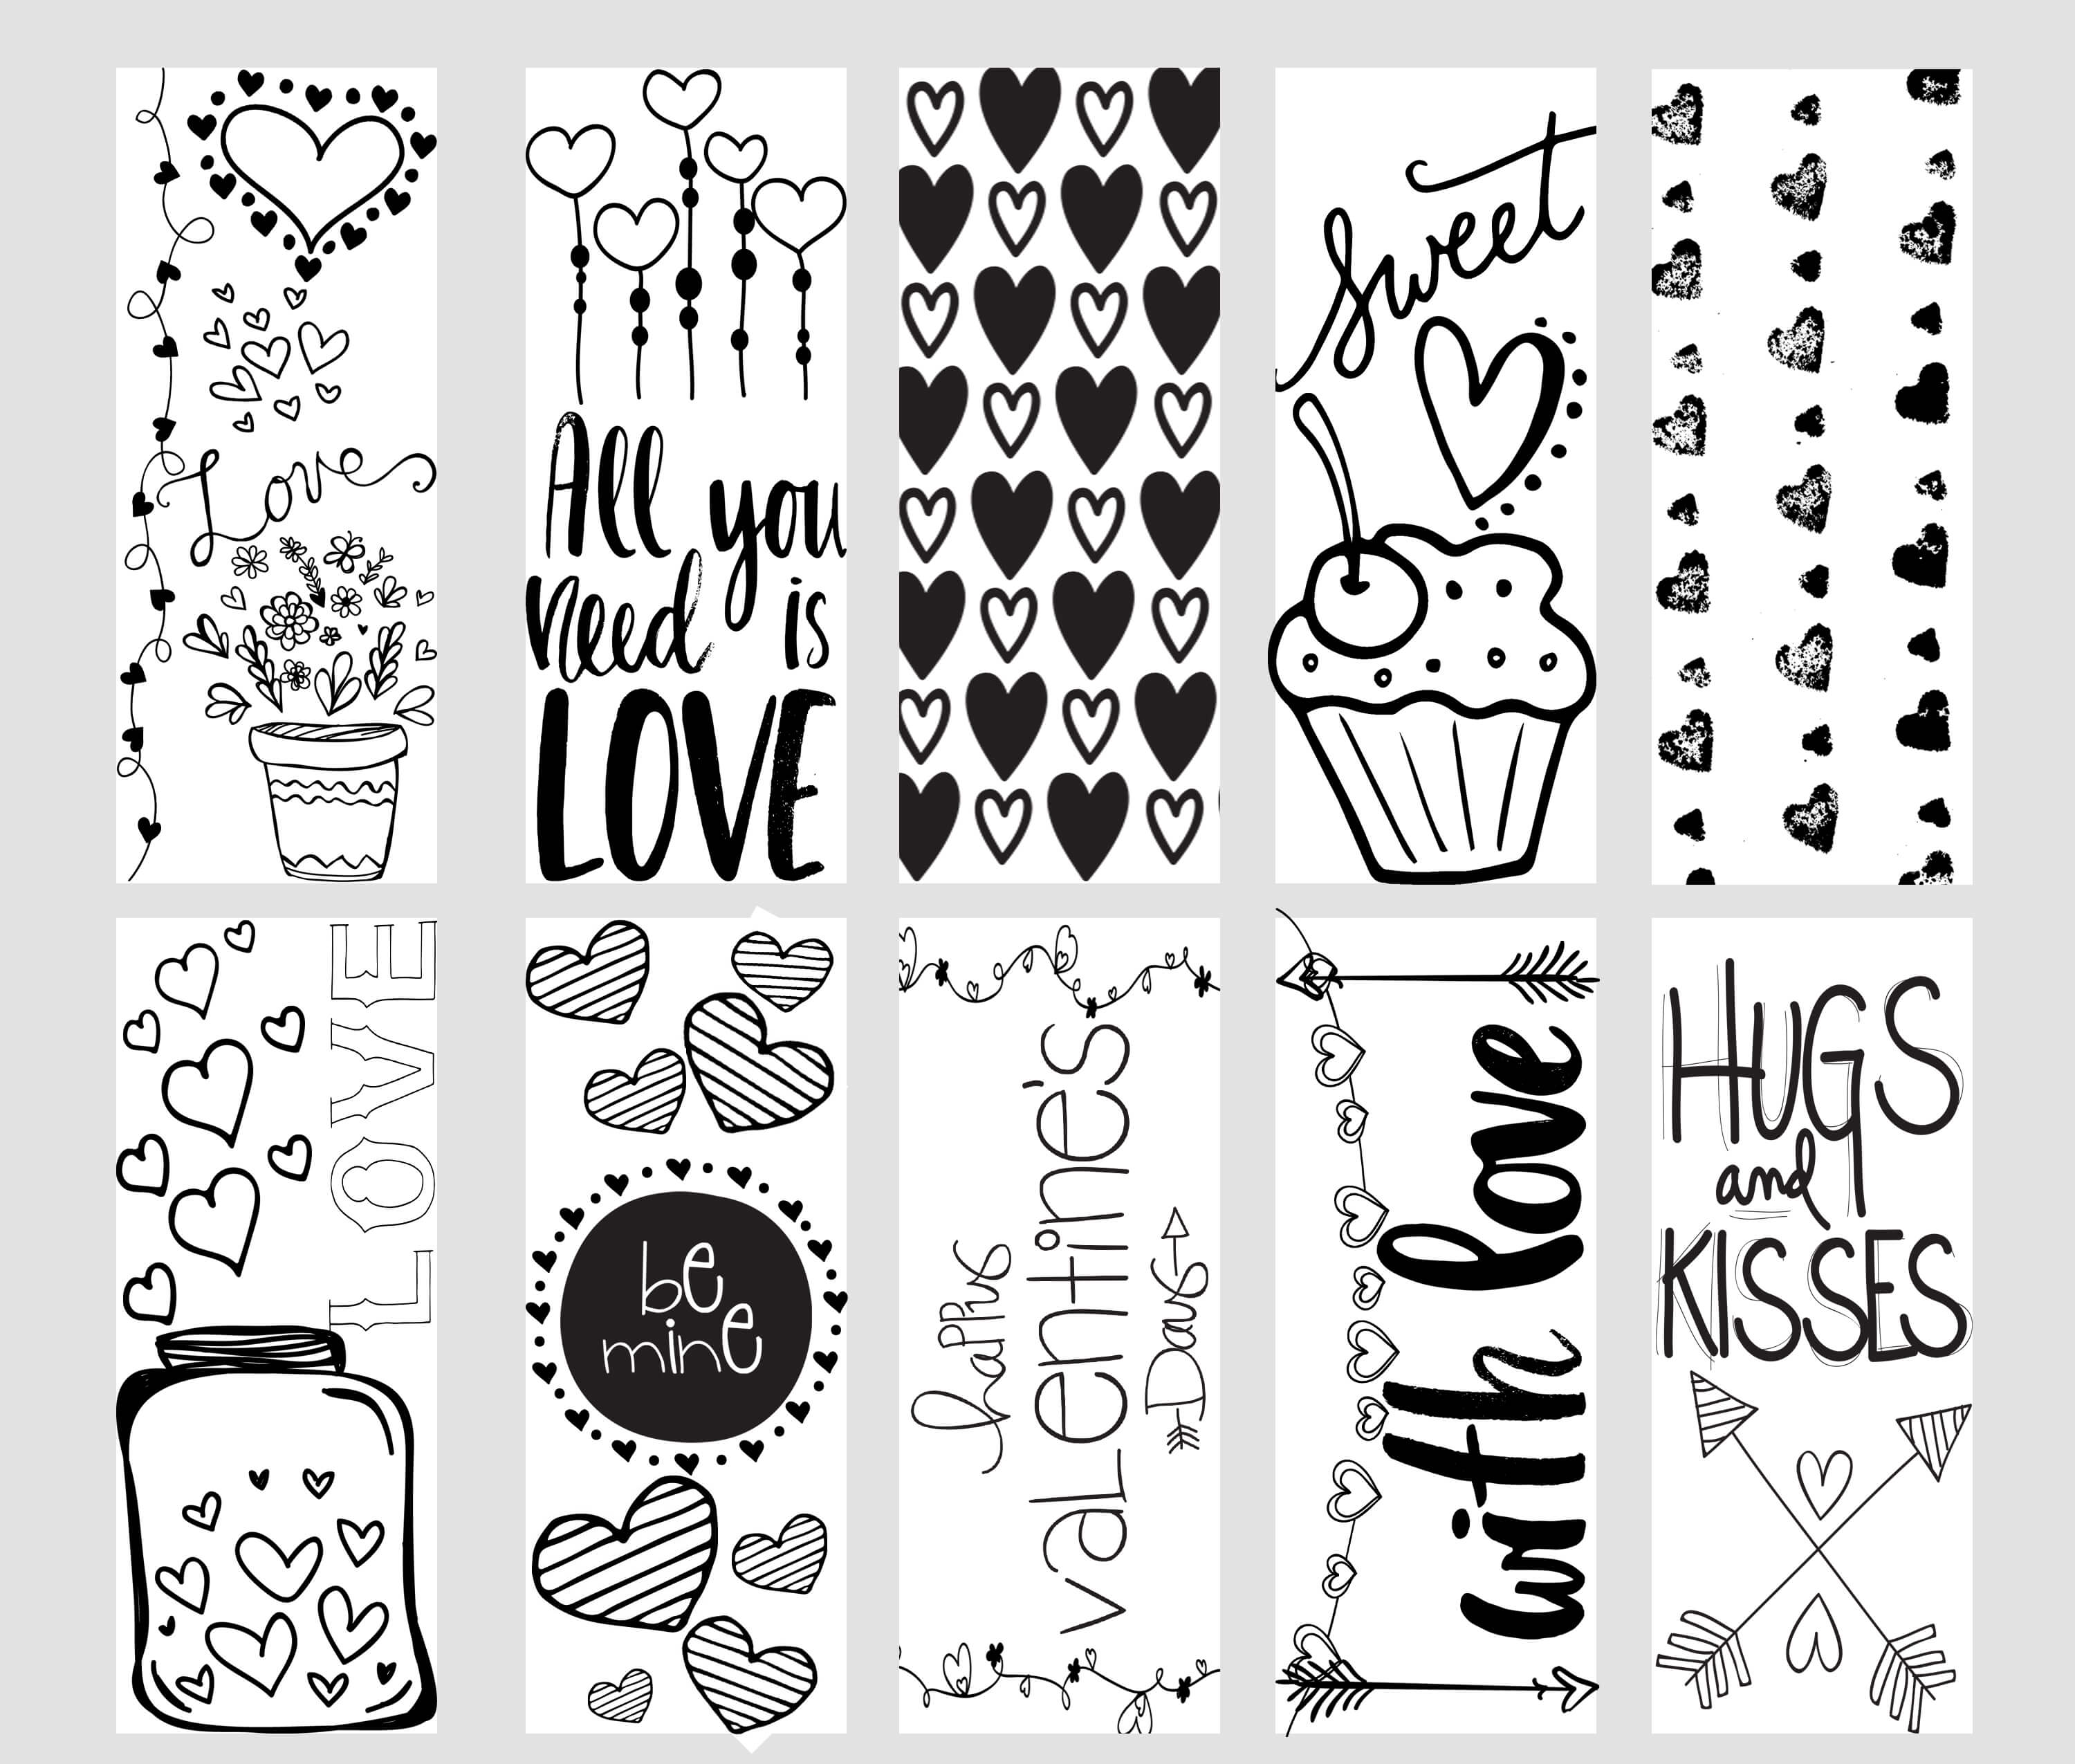 picture relating to Valentines Printable Color Pages referred to as Valentine Printable Coloring Web site Bookmarks - Kleinworth Co